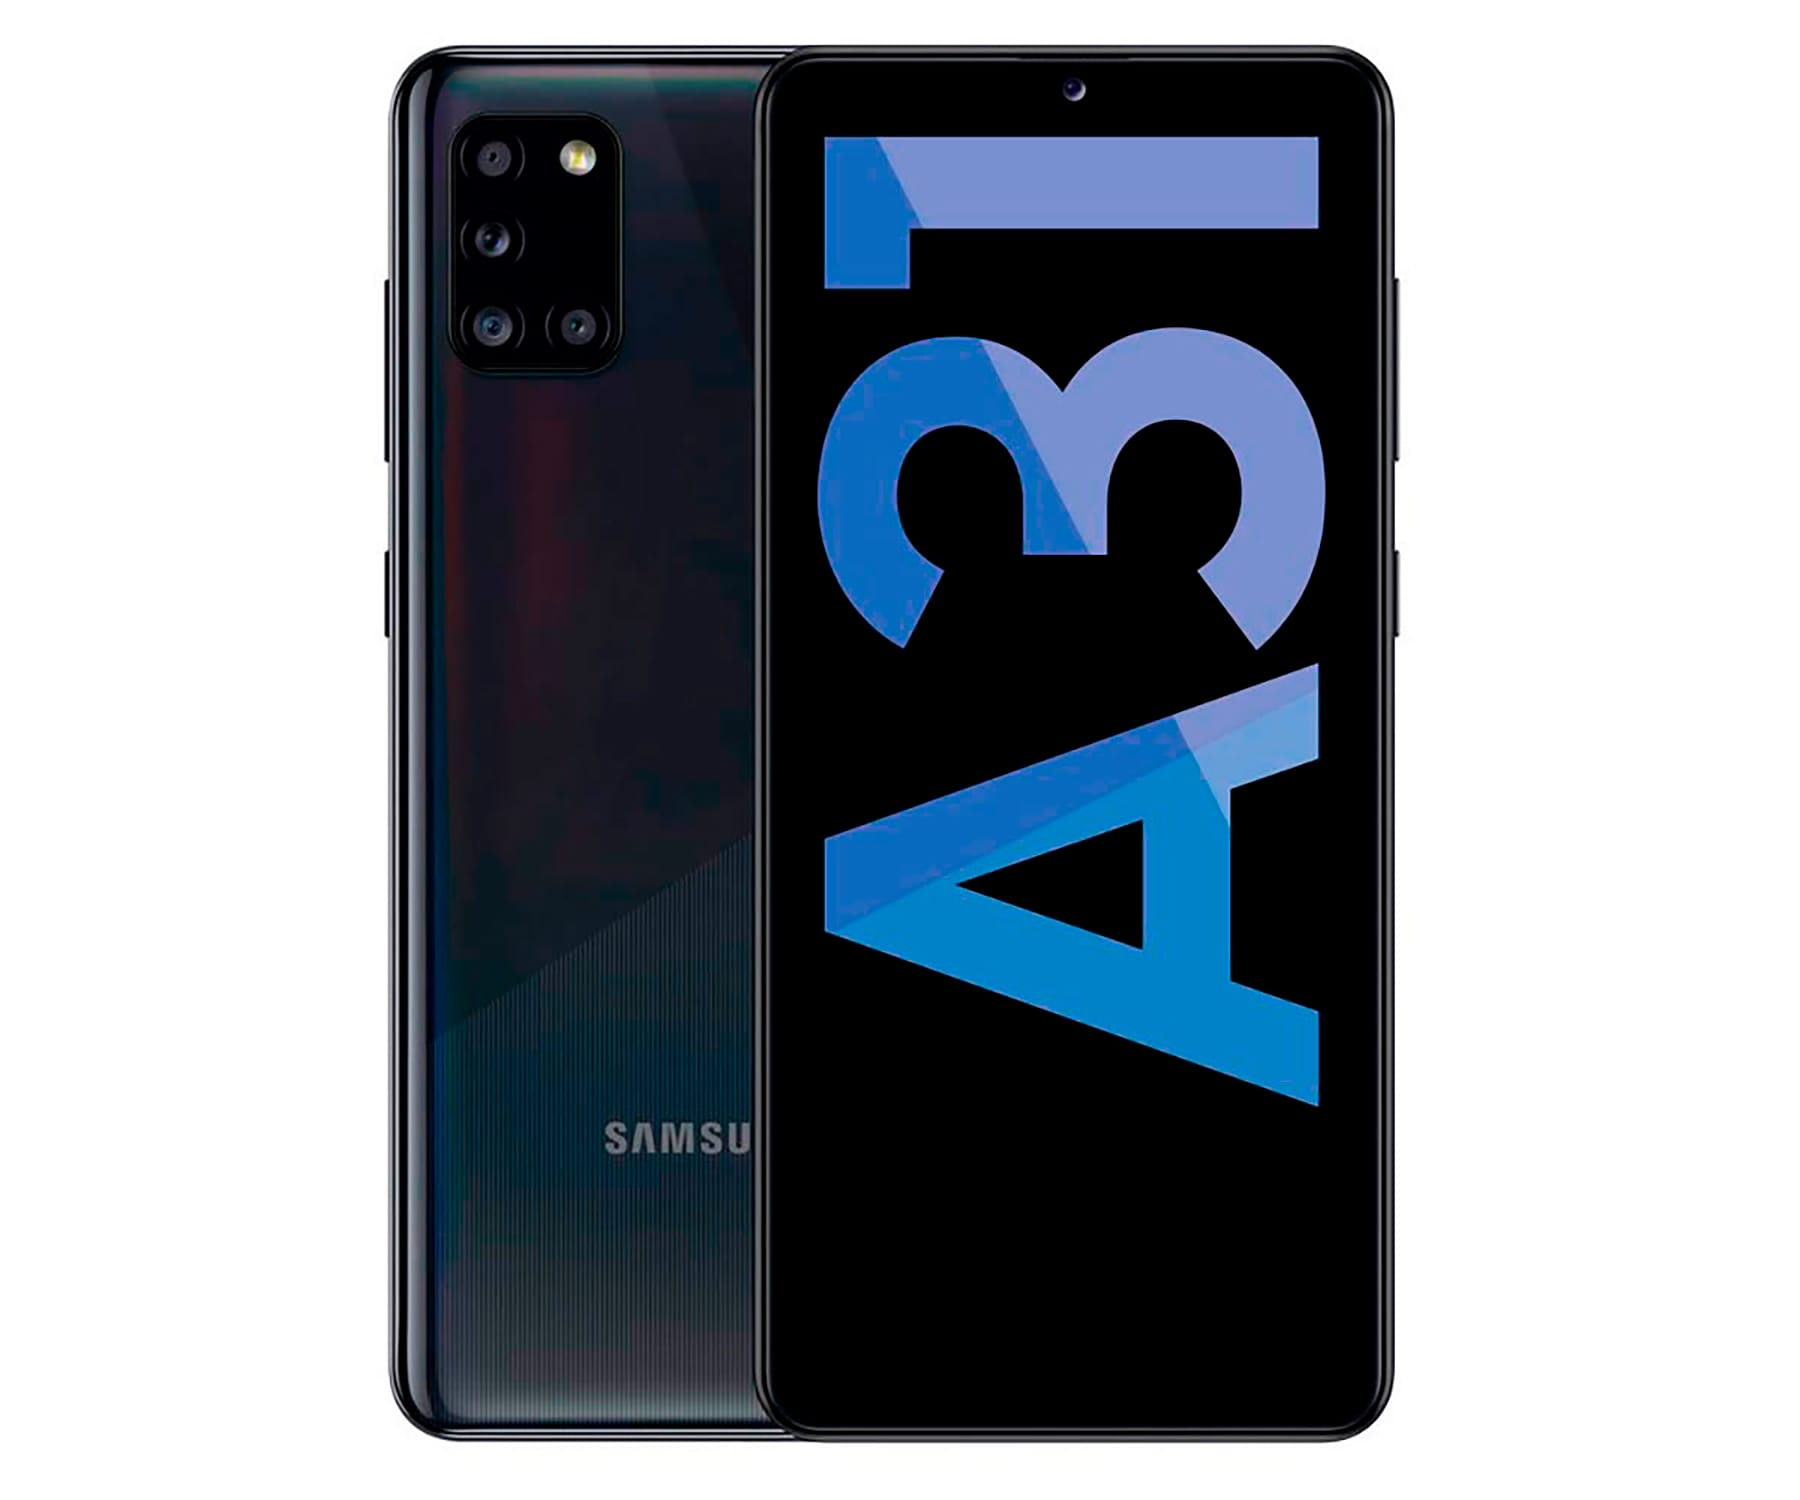 SAMSUNG A31 NEGRO MÓVIL 4G DUAL SIM 6.4'' Super AMOLED FHD+ OCTACORE 128GB 4GB RAM QUADCAM 48MP SELFIES 20MP